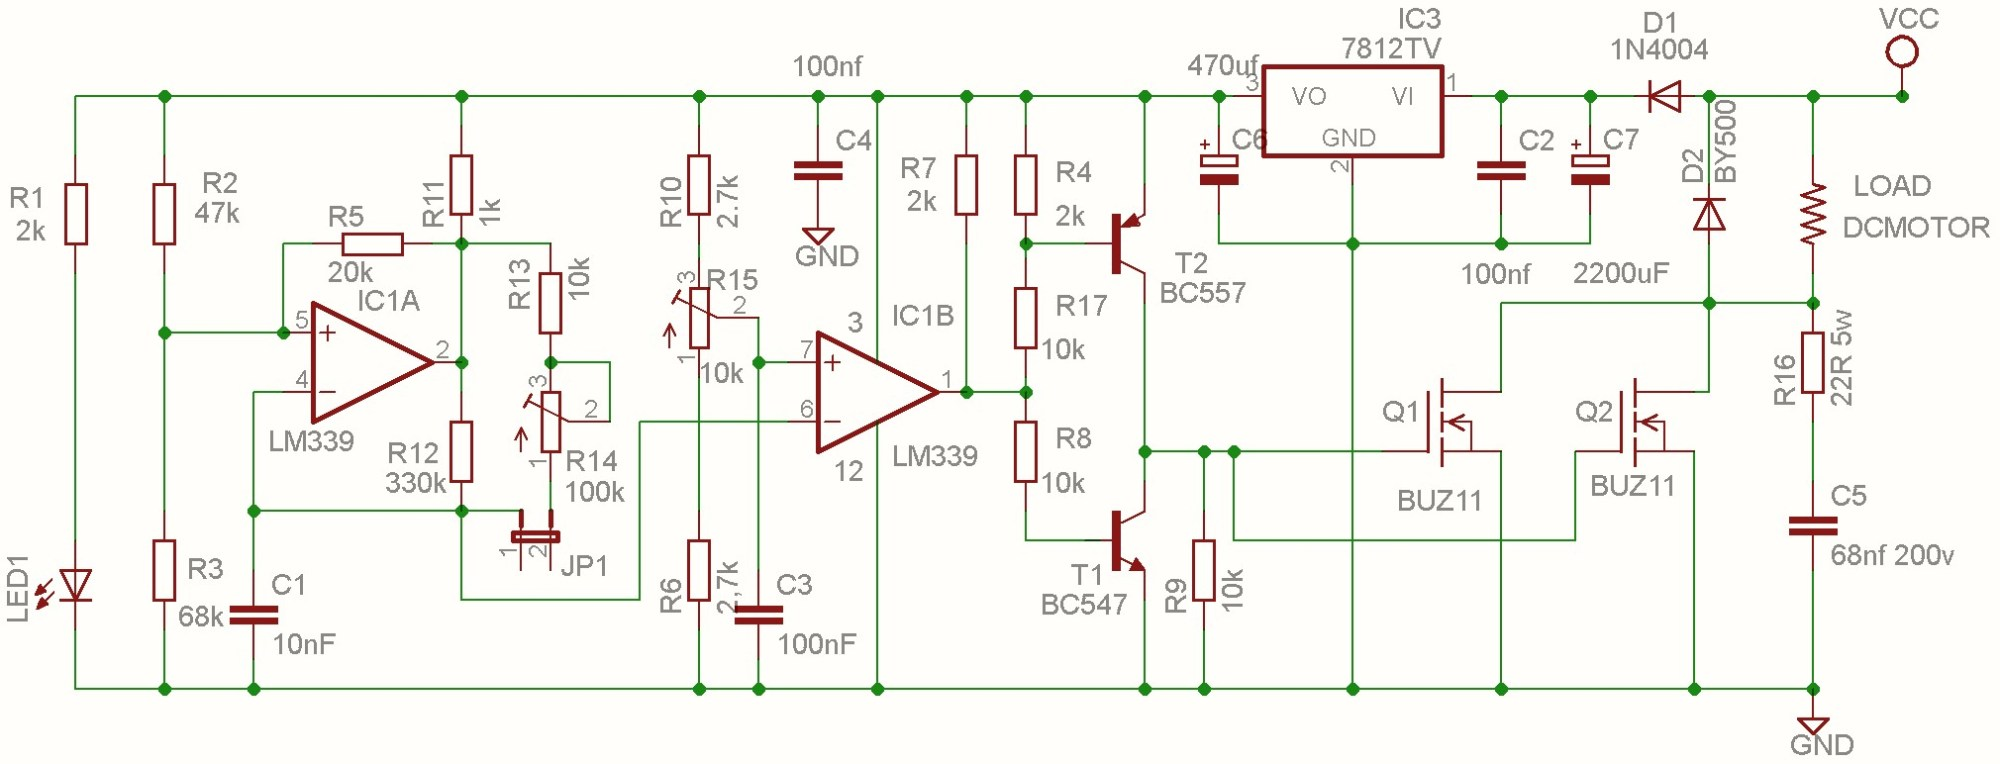 hight resolution of hight resolution of dc motor speed controller pwm 0 100 overcurrent protection second you treadmill motor